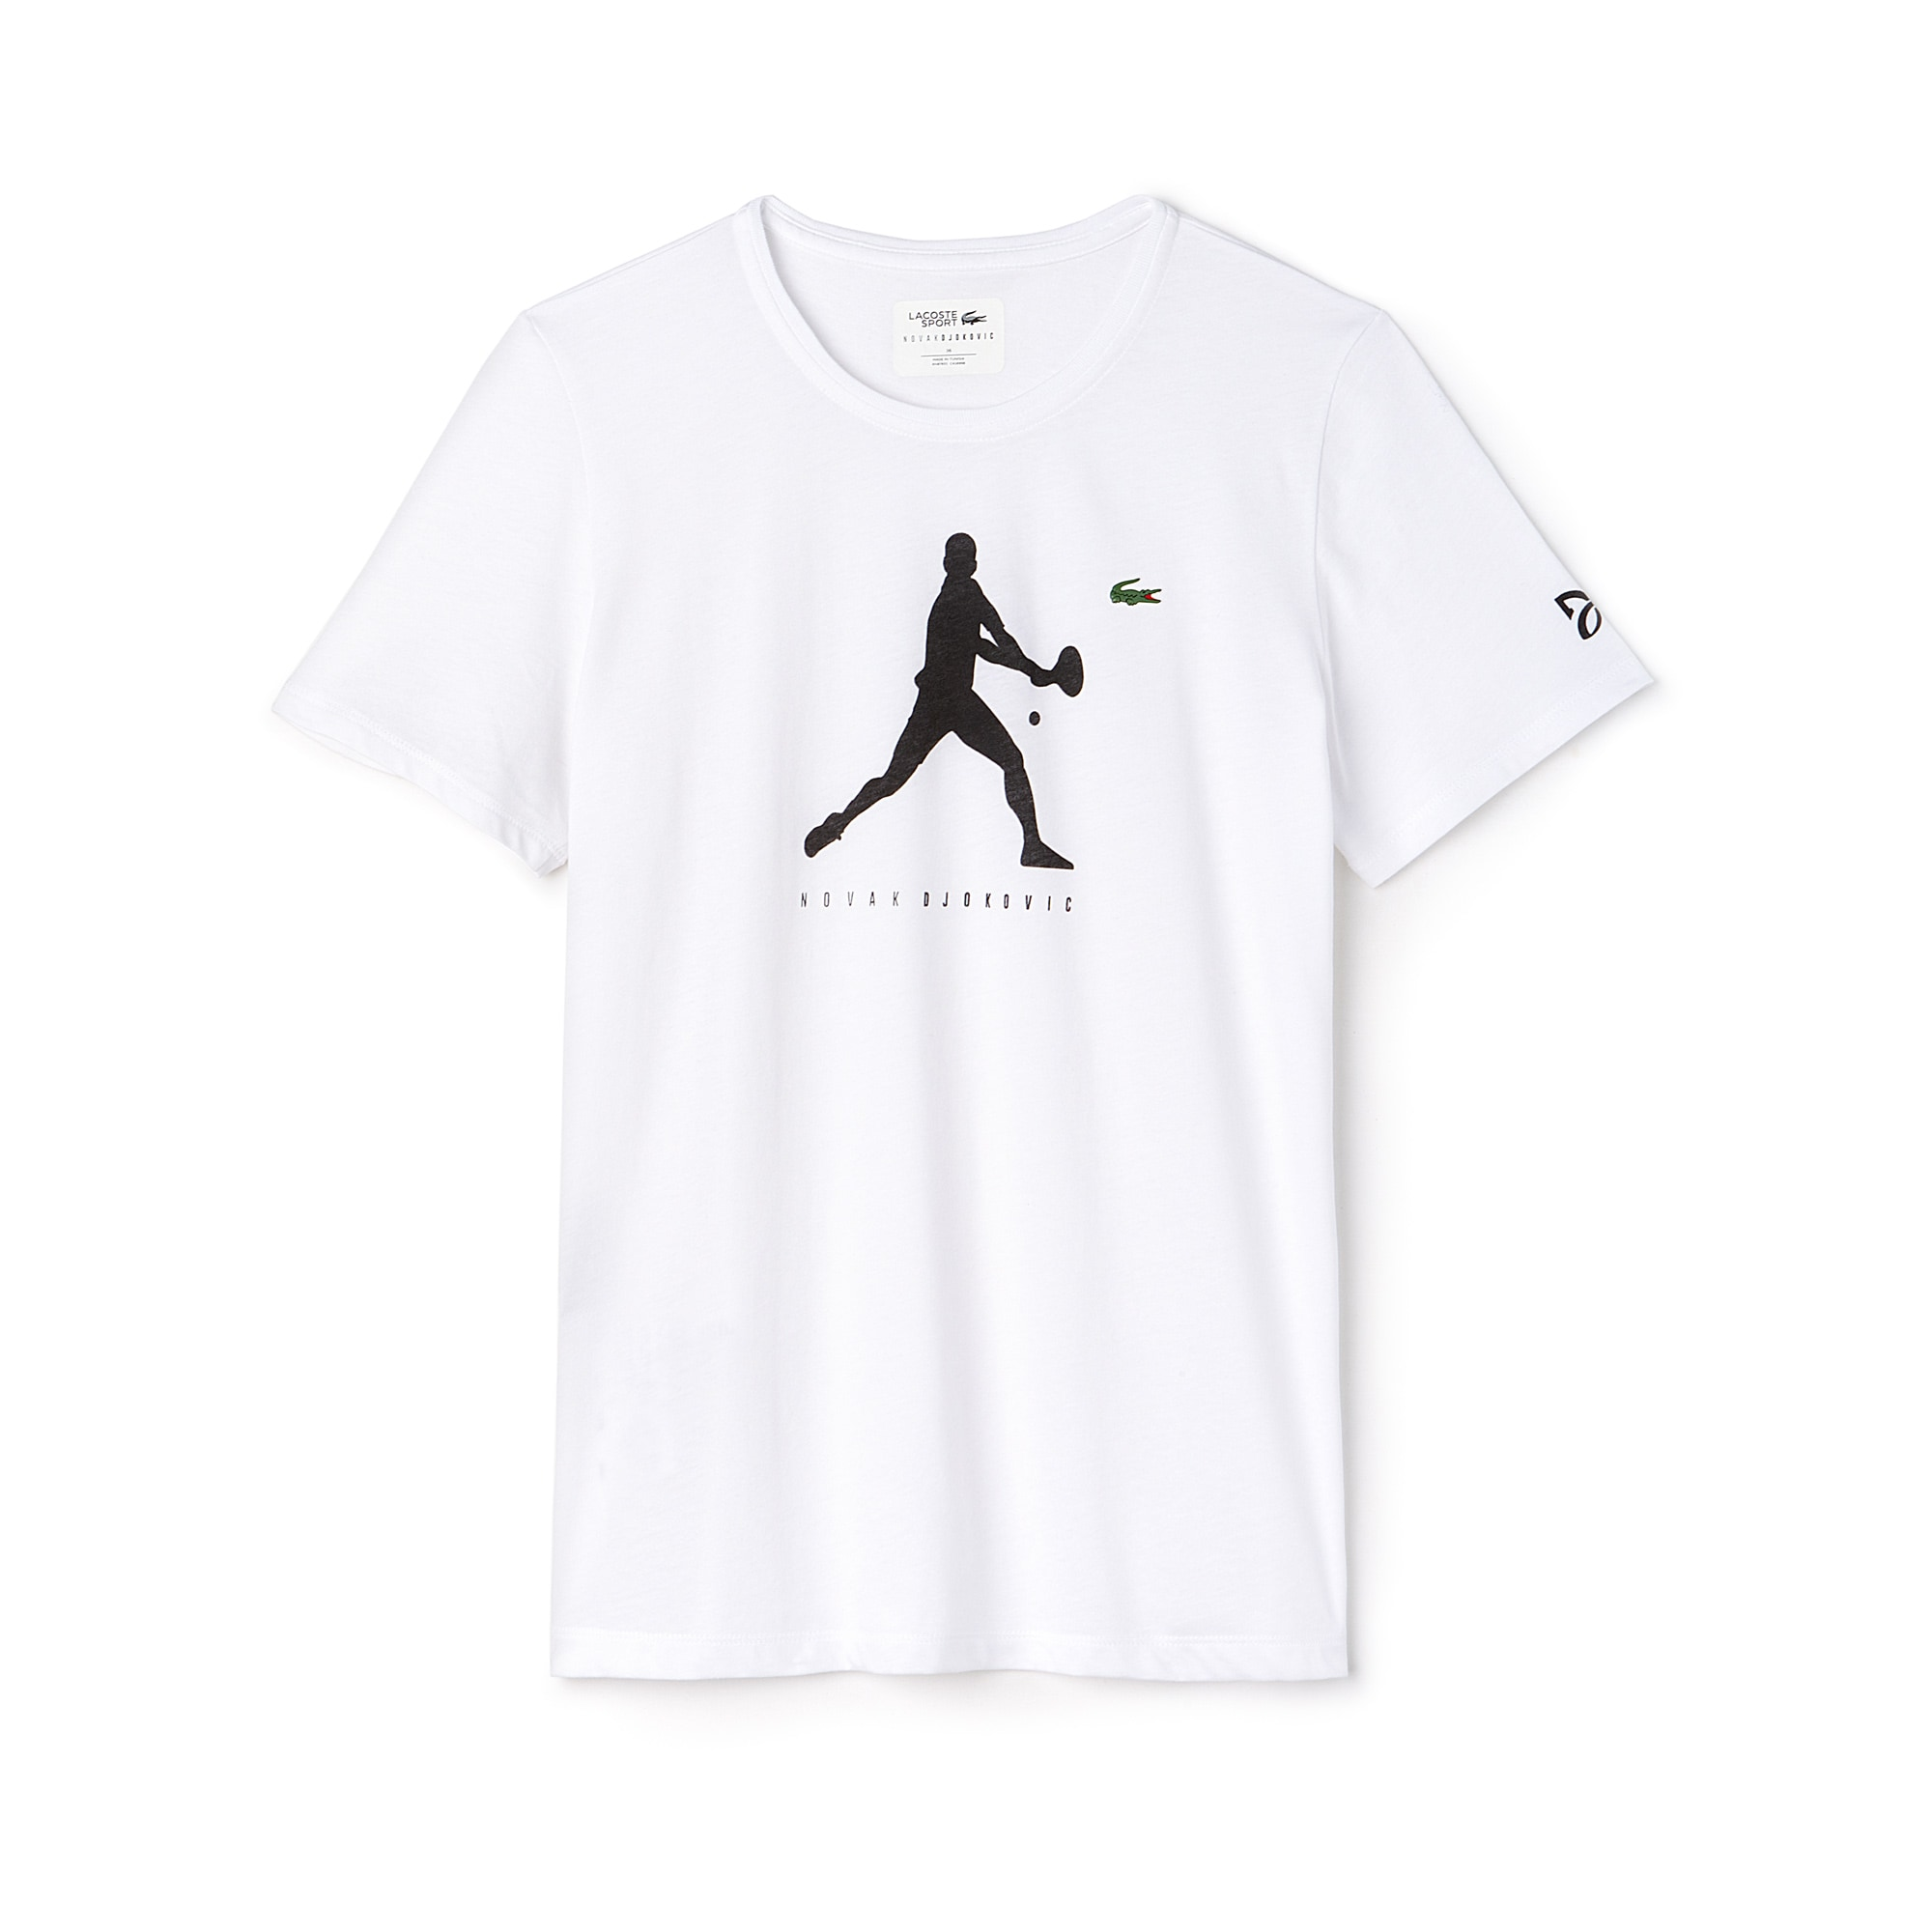 Women's SPORT Print T-Shirt - Novak Djokovic Supporter Collection